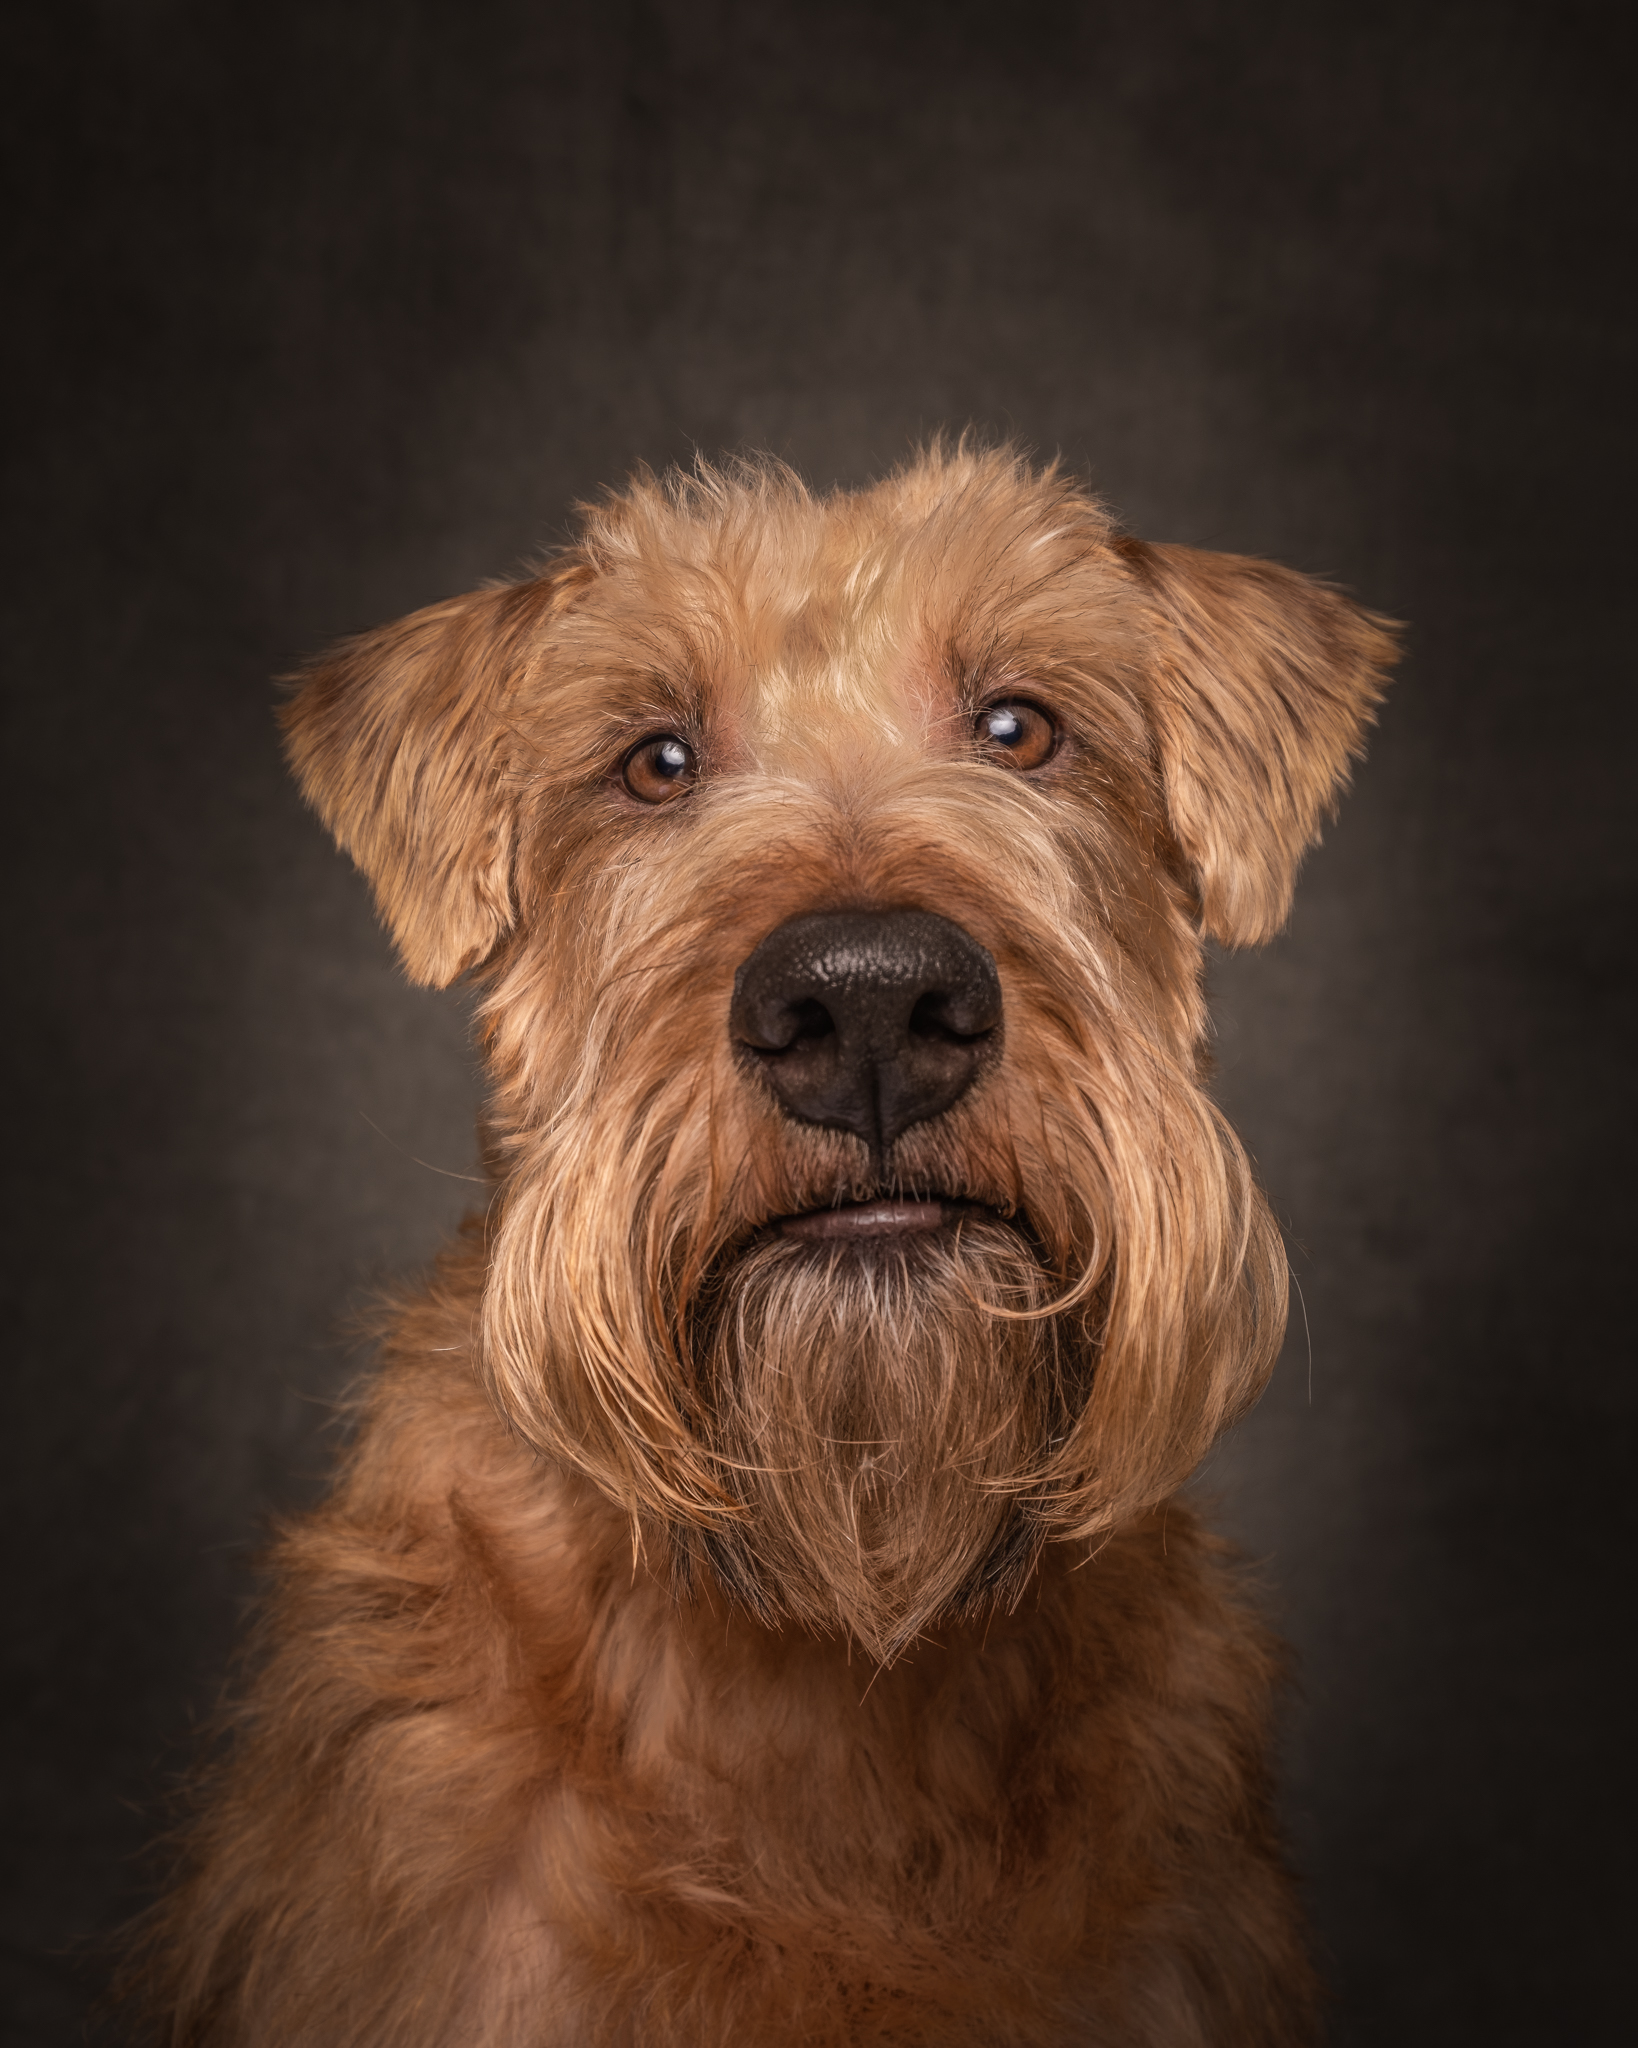 vancouver-pet-photographer-irish-terrier-portrait.jpg